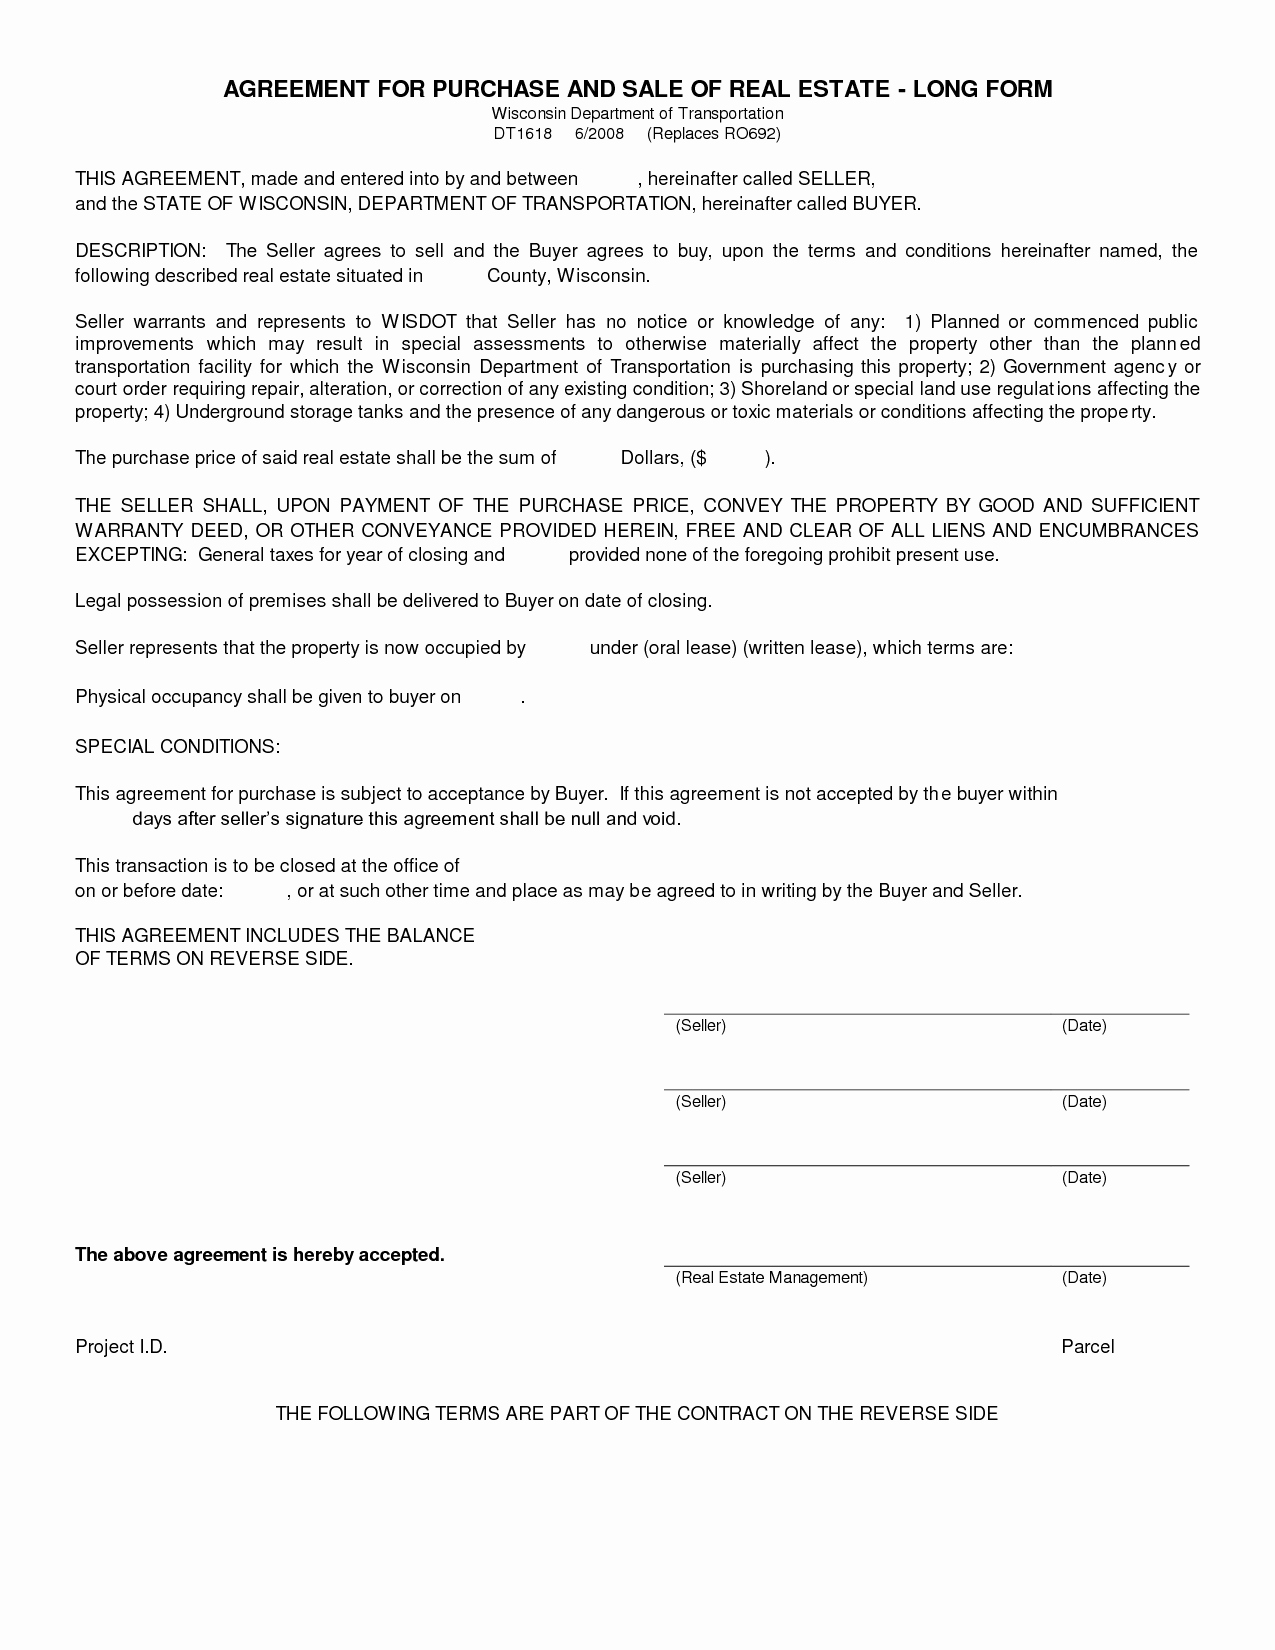 Co Ownership Agreement Real Estate Template Beautiful Free Blank Purchase Agreement form Images Agreement to